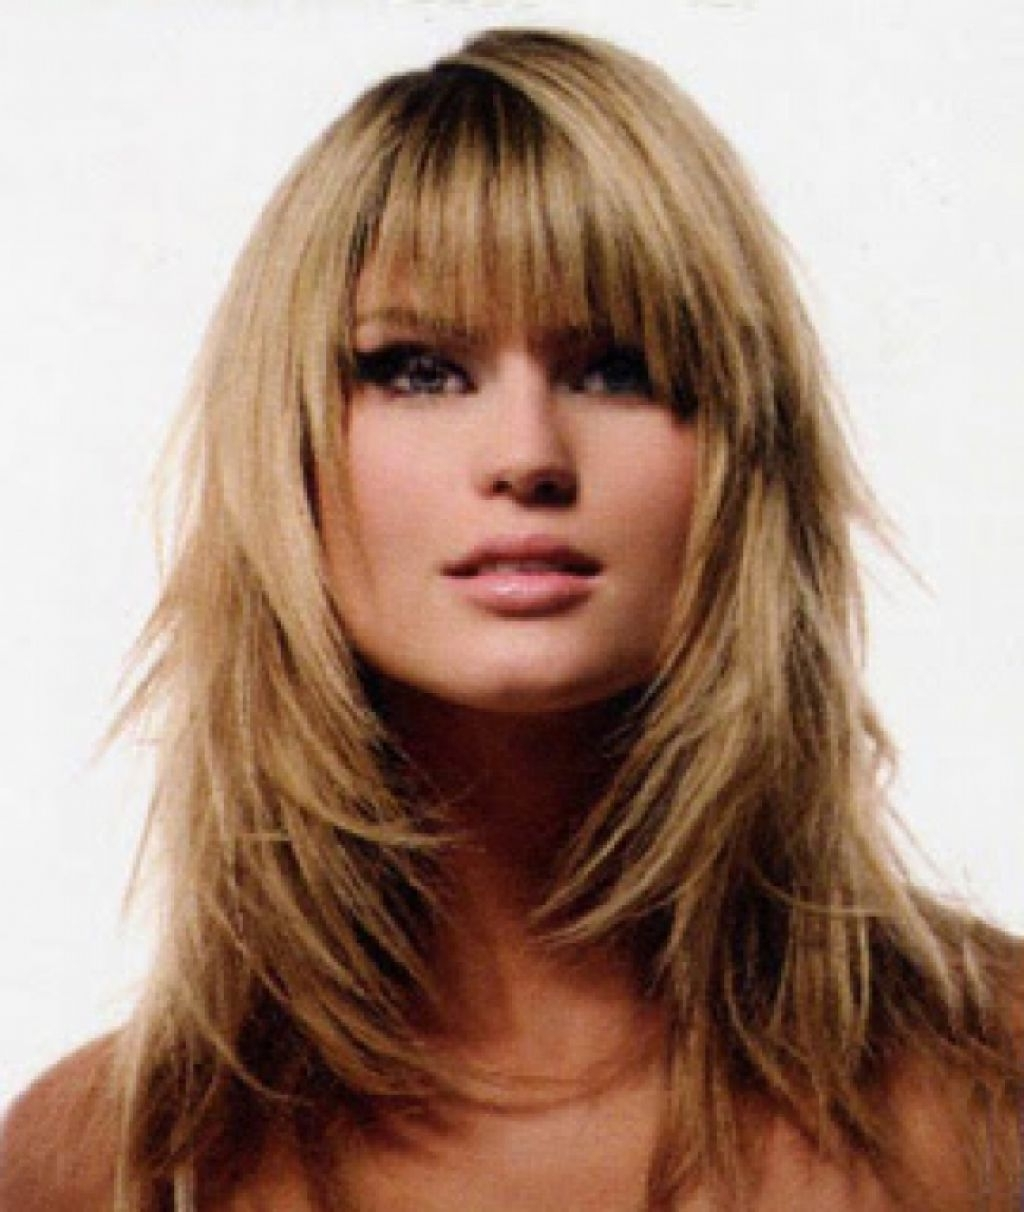 Long Shaggy Hairstyle Cuts Ideas For Ladies – Hairstyle Ideas For For Preferred Shaggy Hairstyles With Fringe (View 5 of 15)